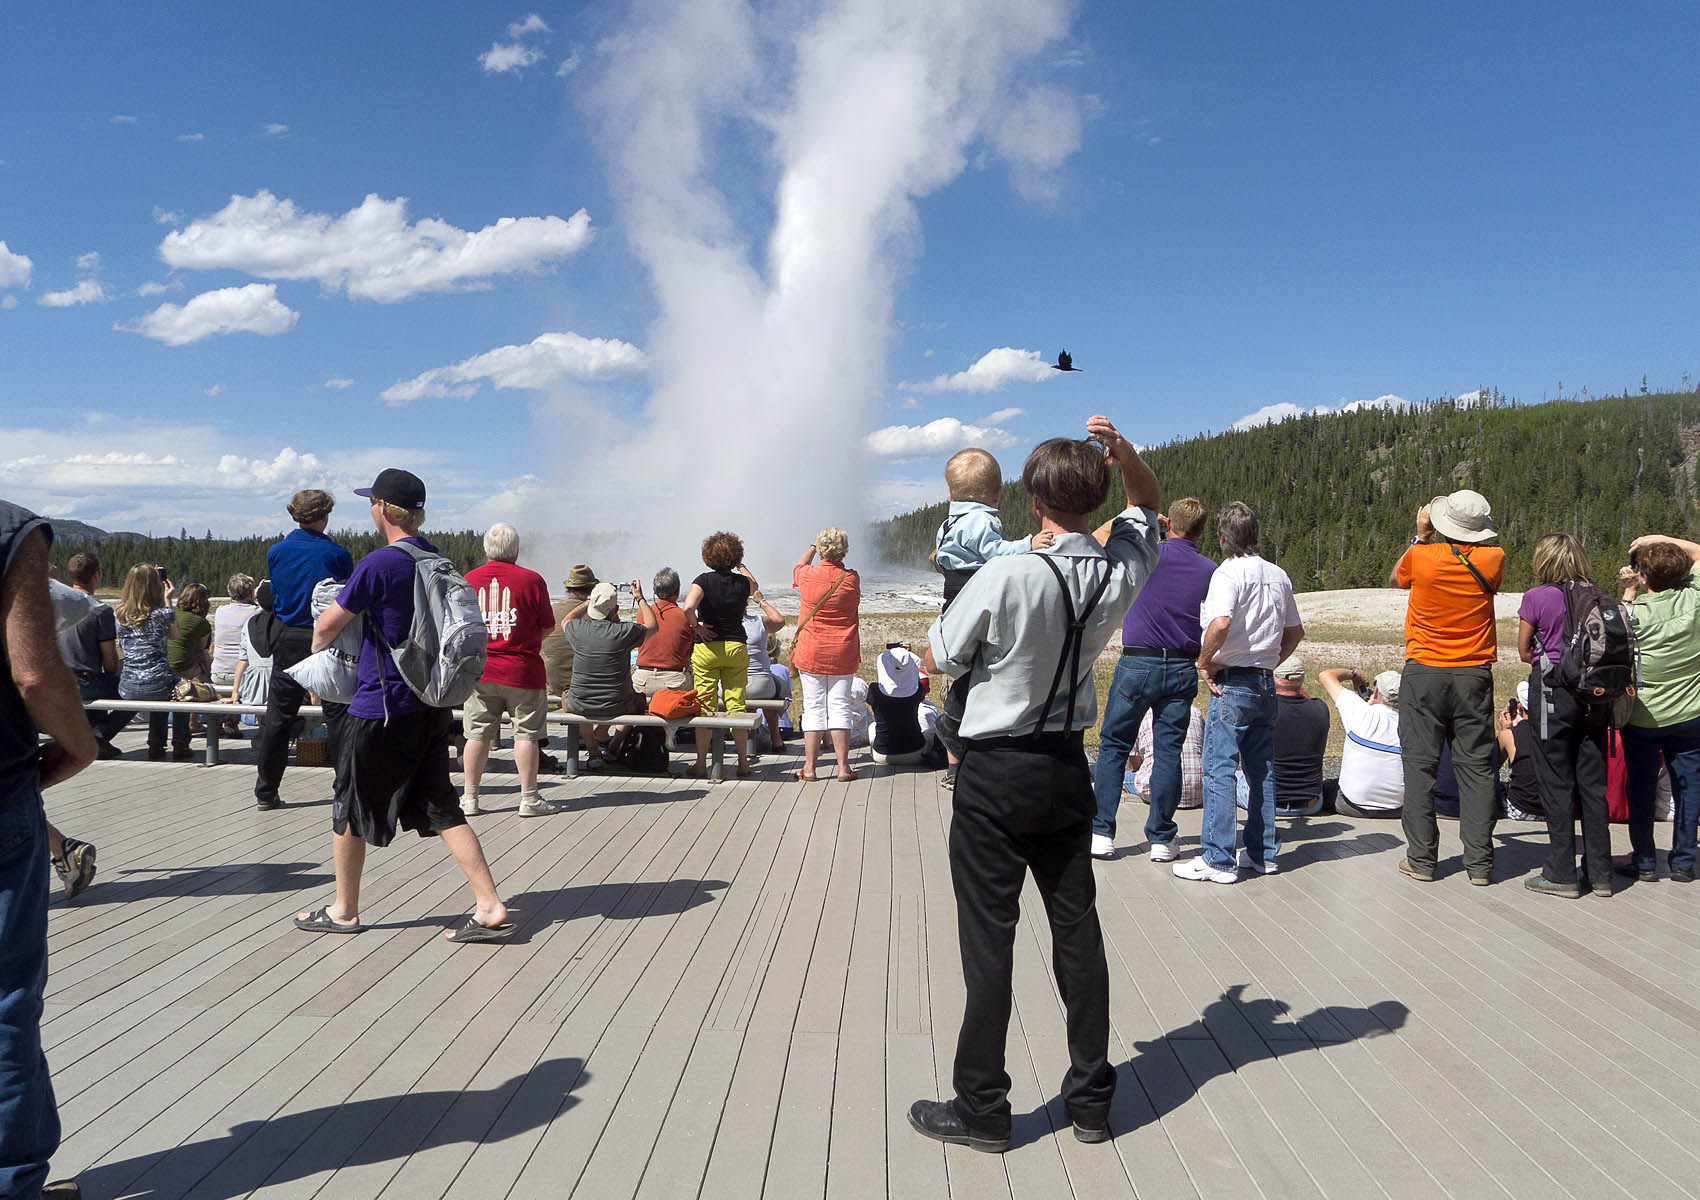 Old Faithful Geyser, Yellowstone National Park, Wyoming.